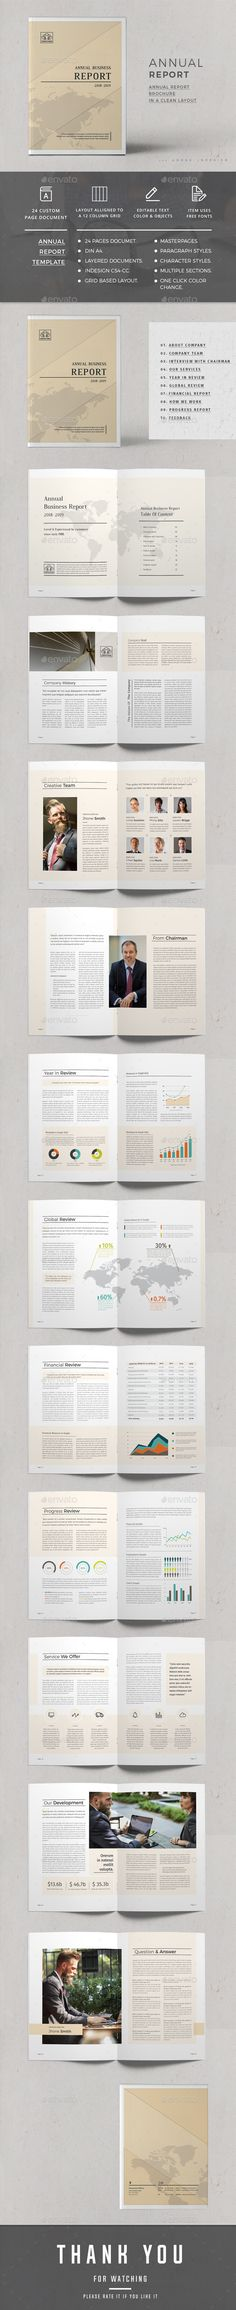 #Annual Report - #Corporate #Brochures Download here: https://graphicriver.net/item/annual-report/20336161?ref=alena994